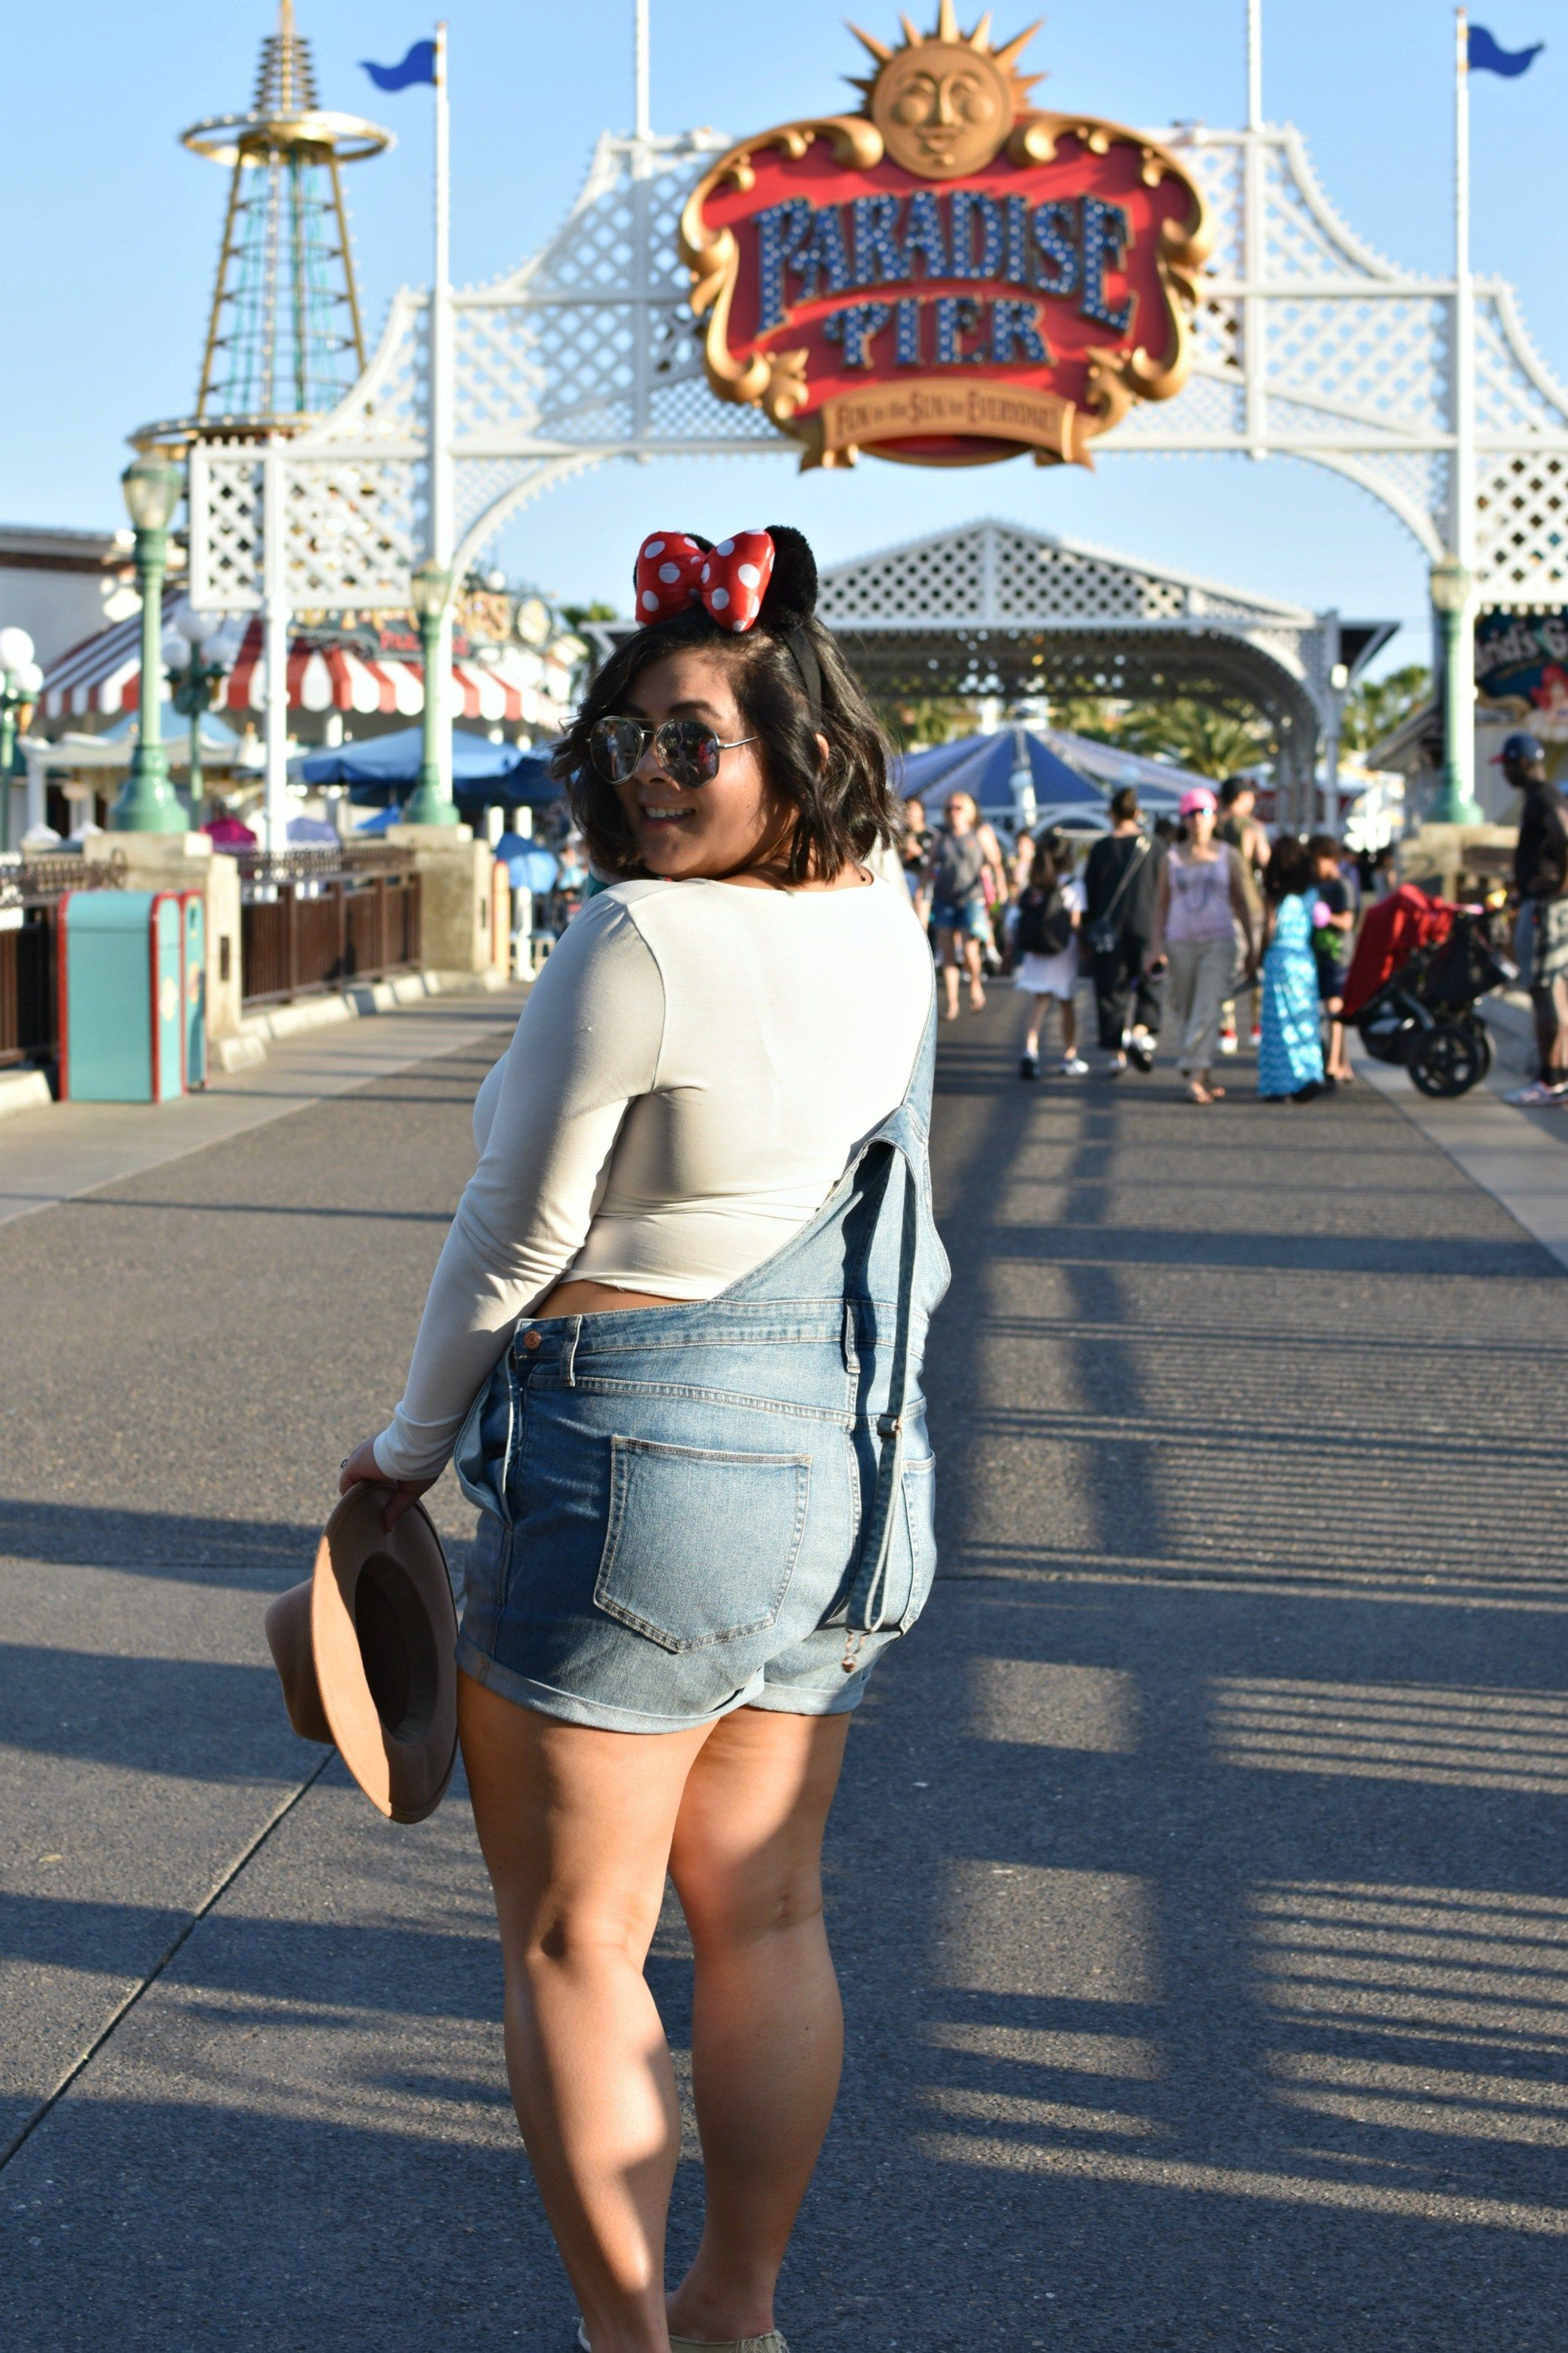 f9c3bb390866 Finding a plus size summer Disneyland outfit is a fun challenge. First  timers should consider comfort to fully enjoy the park.